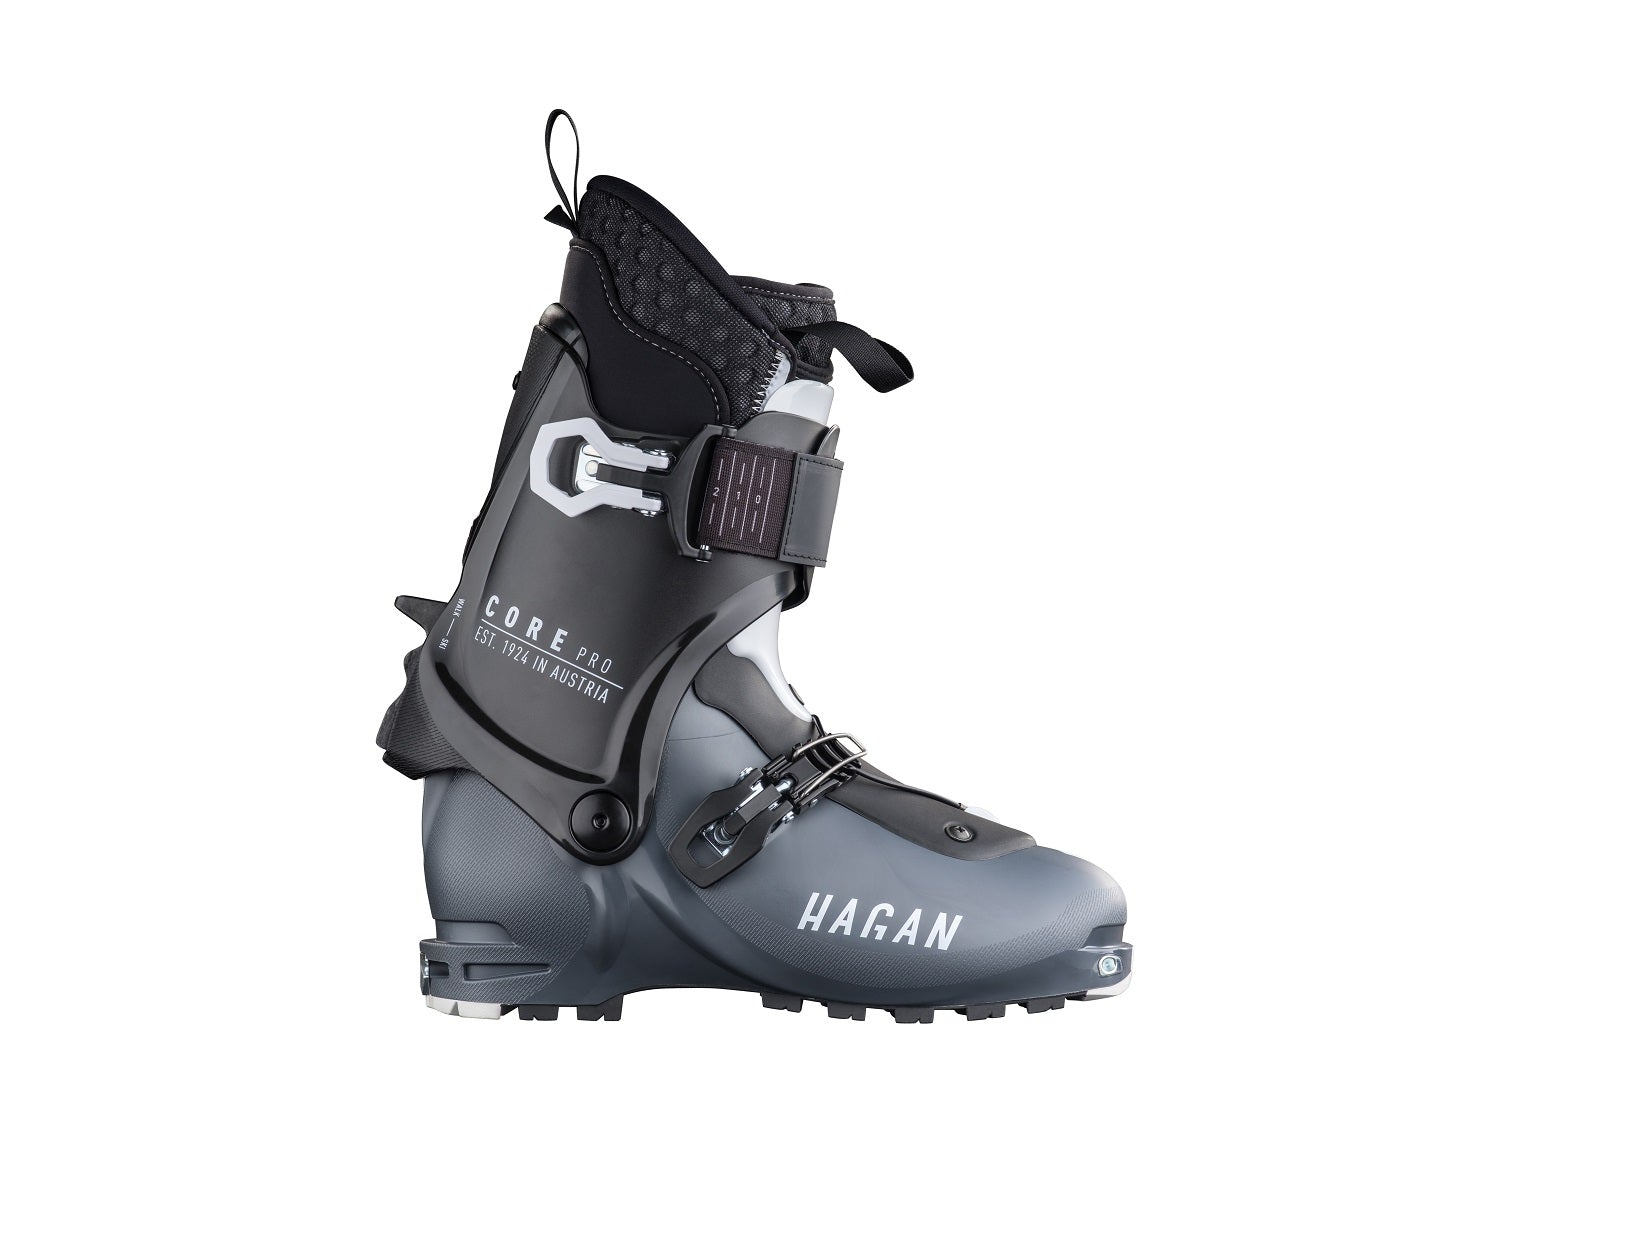 HAGAN Core Alpine Ski Touring Boot